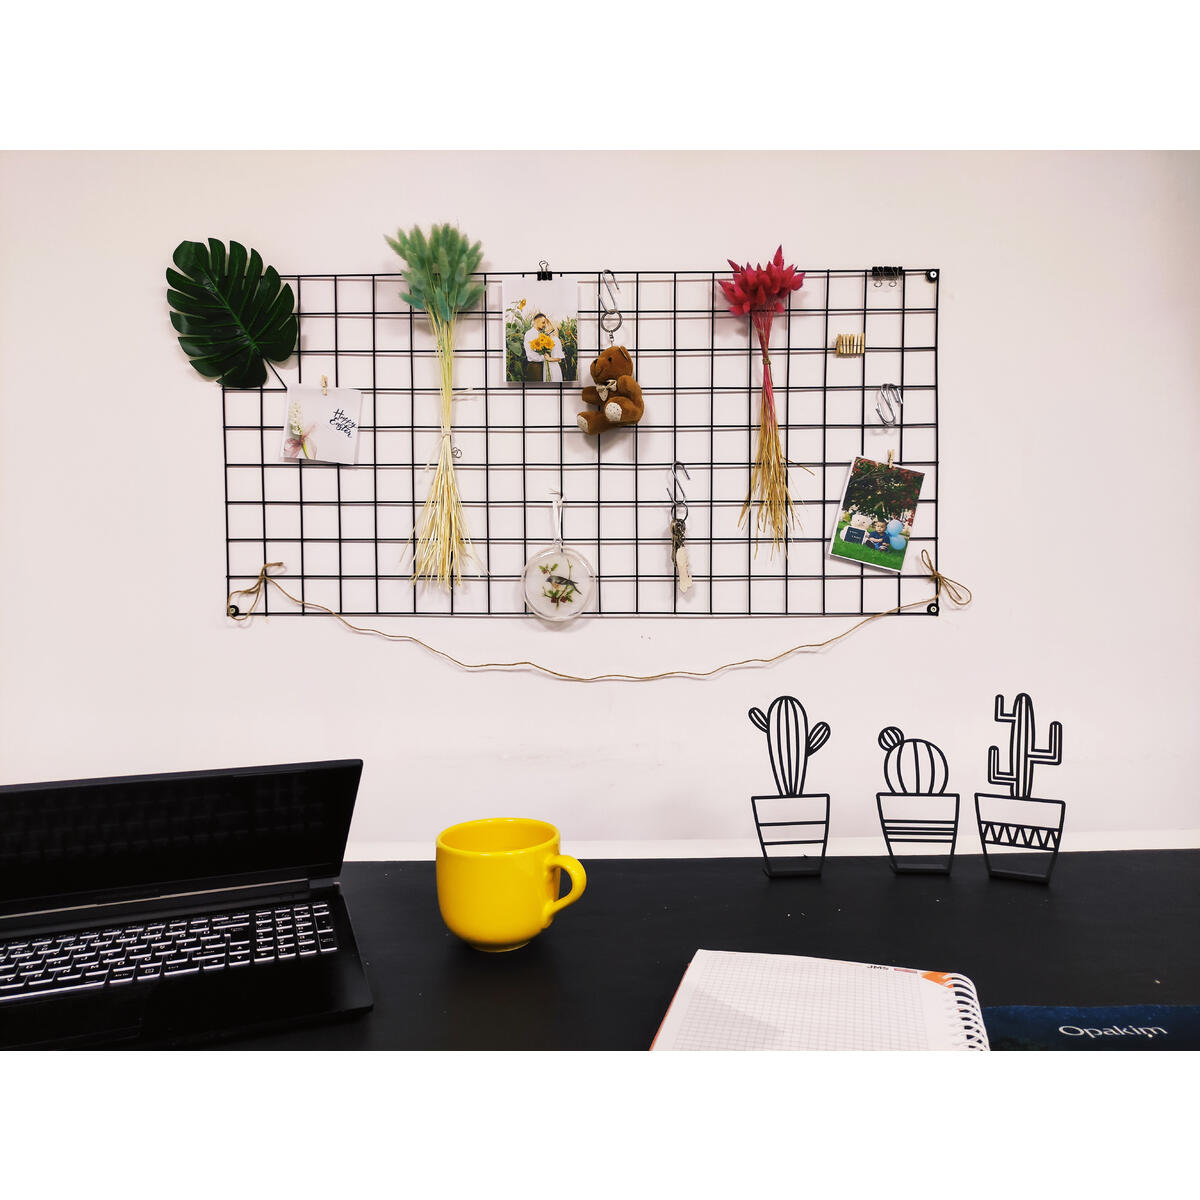 PLTz Art Wire Wall Grid Organizer for Photo Hanging Display and Wall Storage Organizer, Metal Grid Photo Wall Panel, Wire Mesh Memo Board, Picture Holder, Aesthetic Desk Decor, (37.4x17.7 inch-Black)